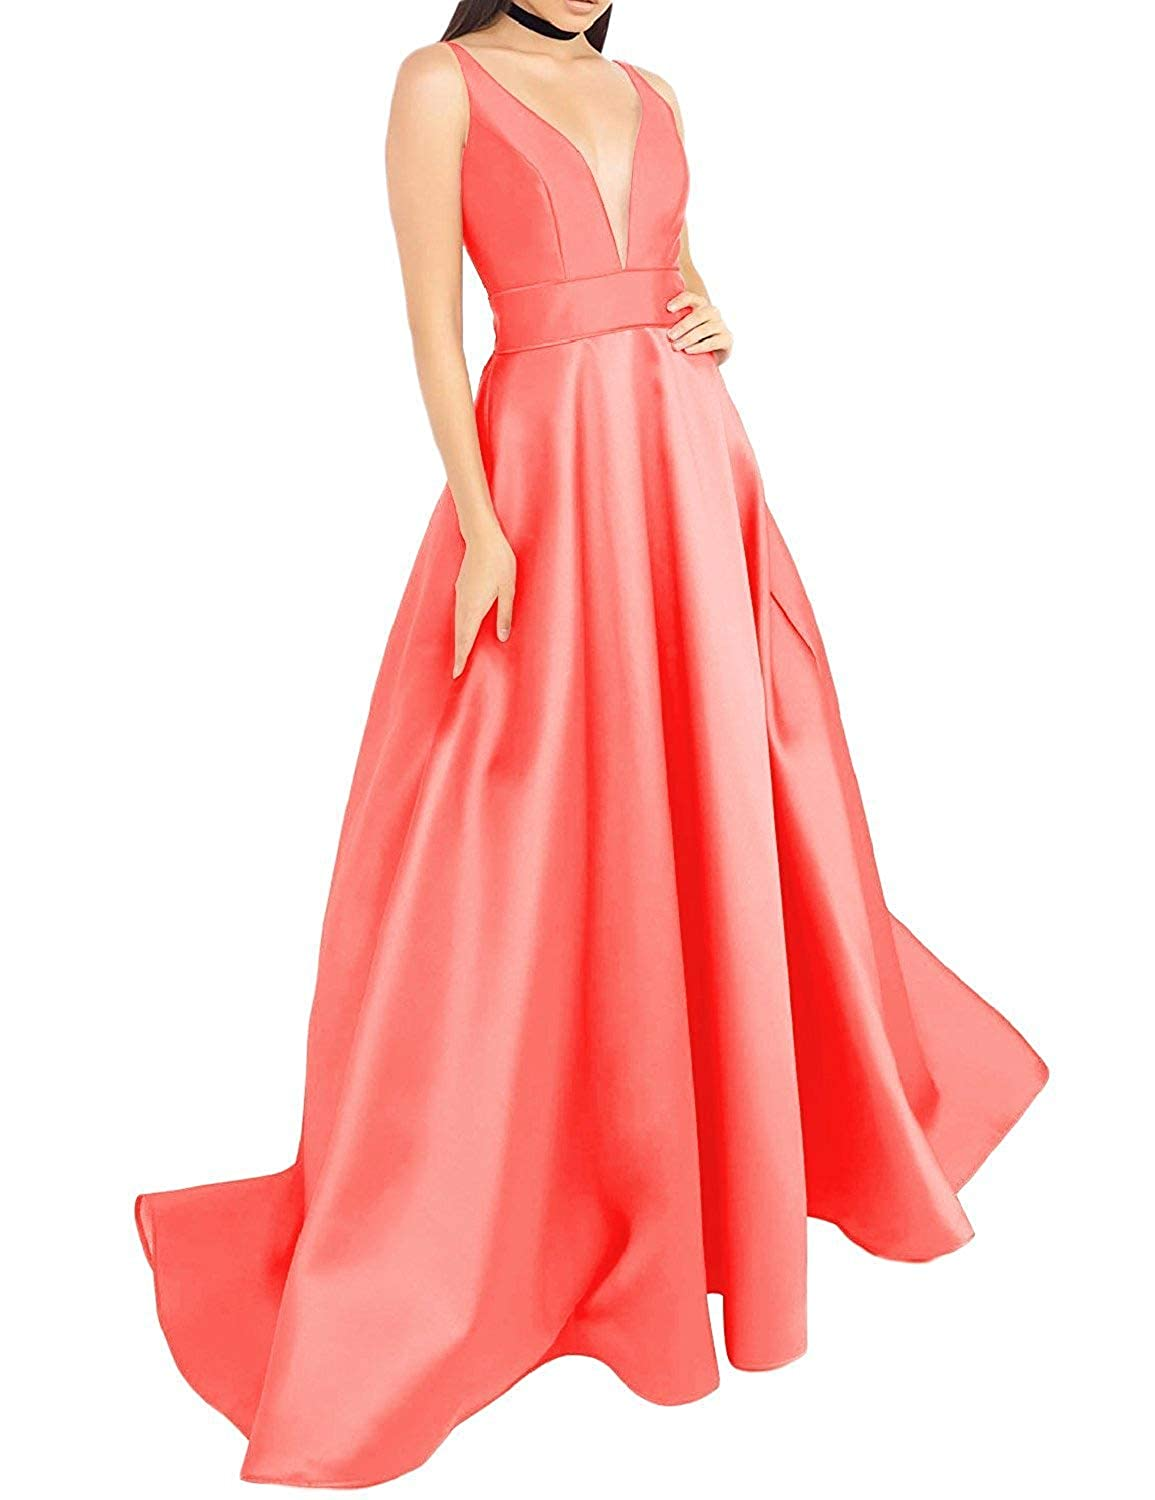 Coral luolandi Women's V Neck Prom Dresses A Line Satin Long Evening Formal Gowns with Pockets